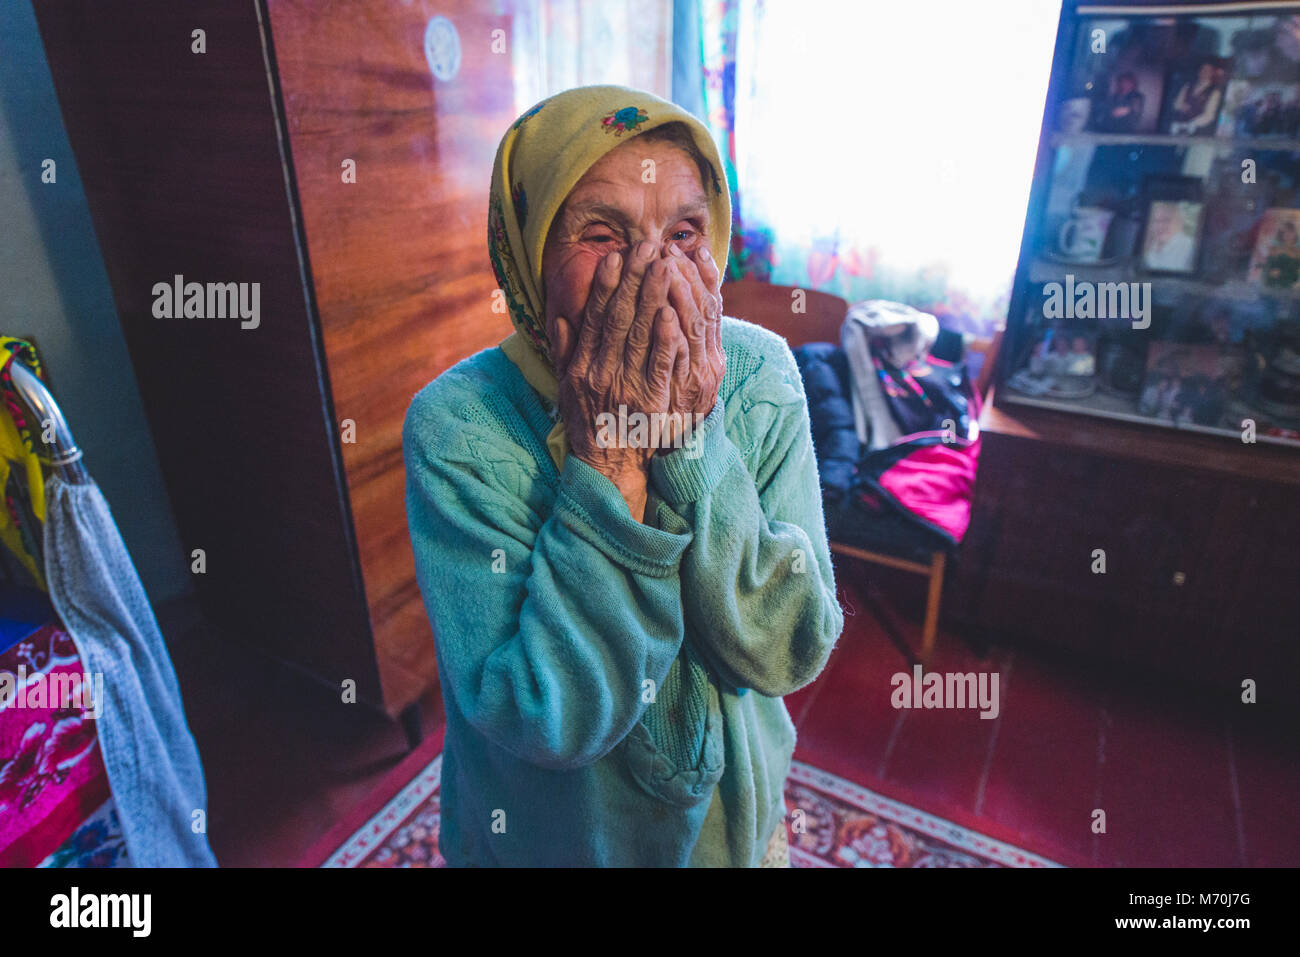 Ukraine, Chernobyl Exclusion Zone: people who came back to the exclusion zone after the Chernobyl nuclear disaster Stock Photo